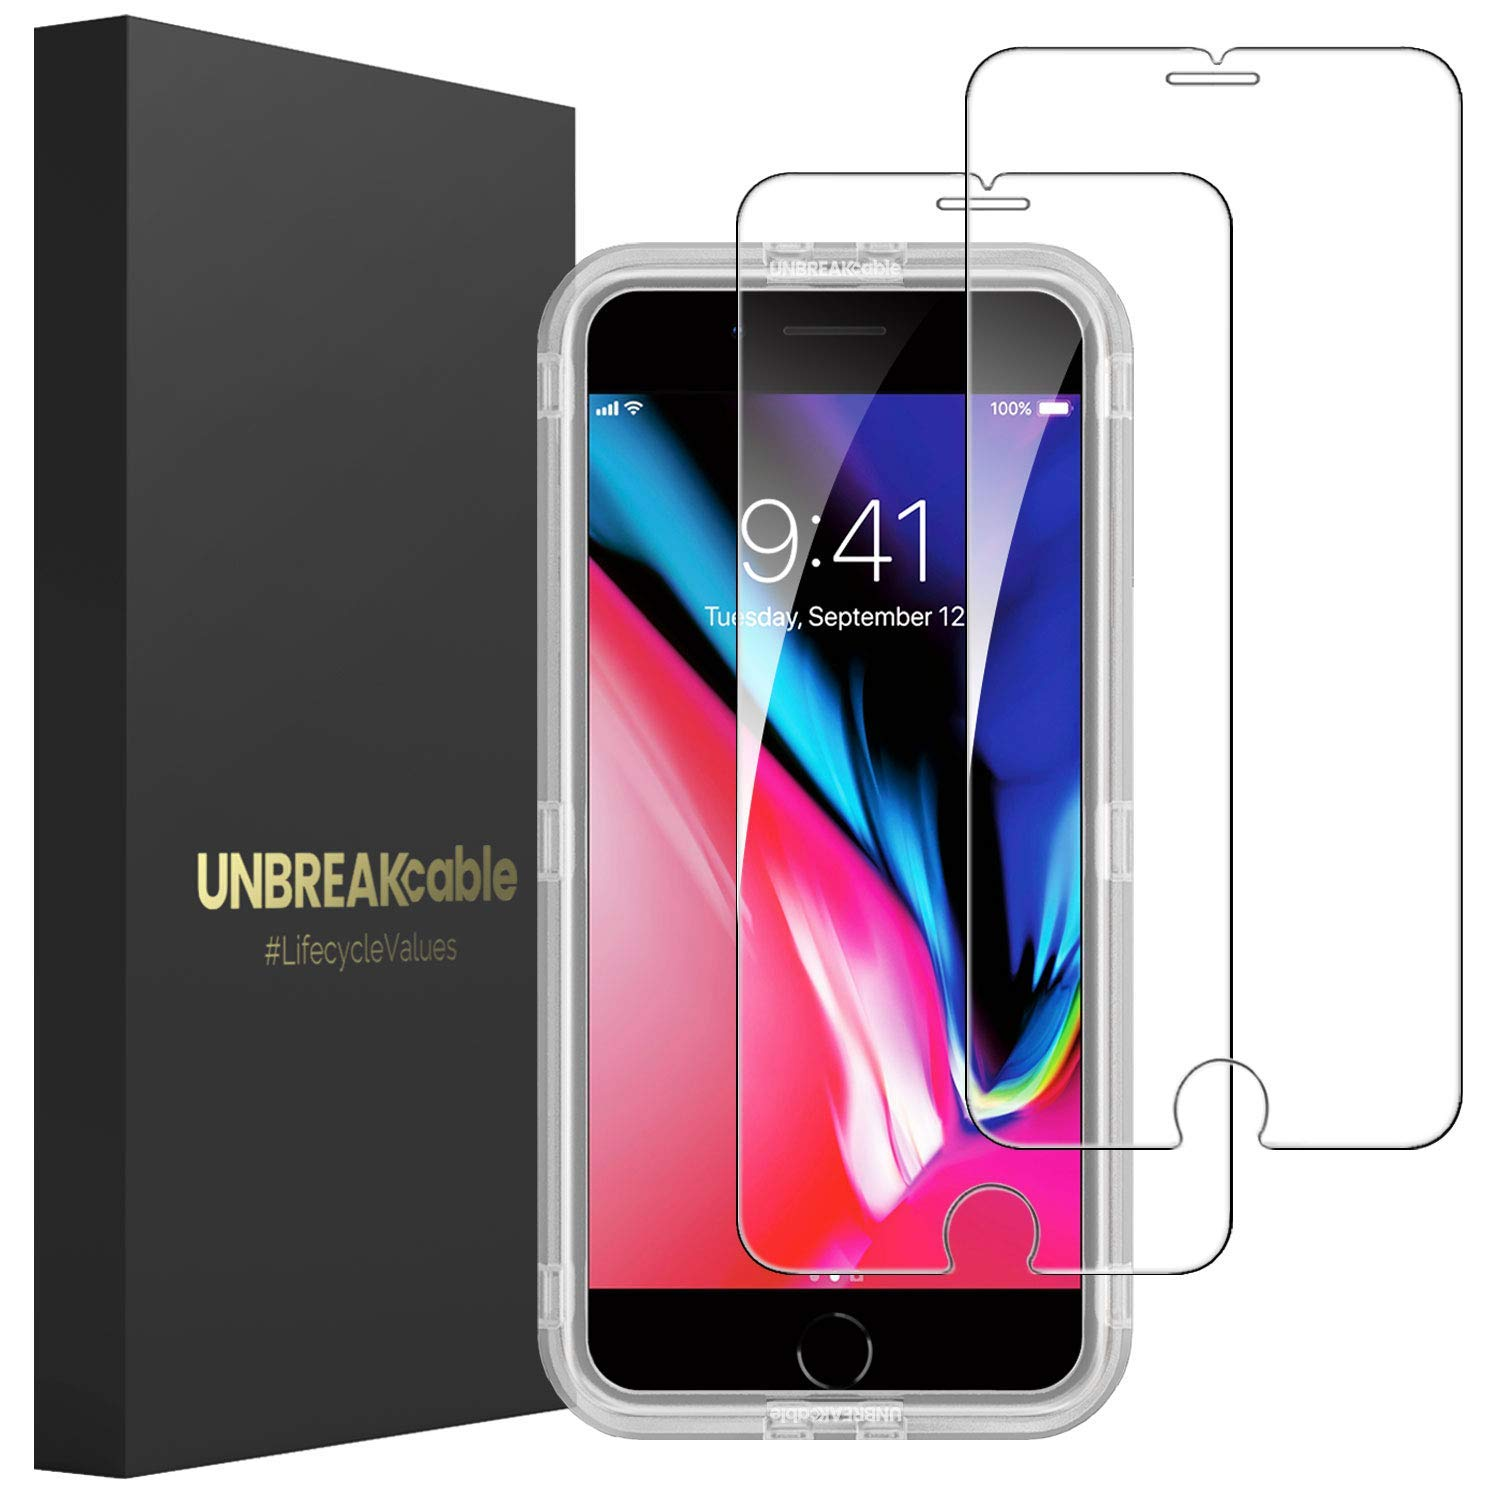 UNBREAKcable Screen Protector for iPhone 7 Plus 8 Plus [2-Pack] - Double Defense Series Premium Tempered Glass for iPhone 7 Plus/ 8 Plus, Case Friendly, Anti-Bubbles, Scratch-Resistant by UNBREAKcable